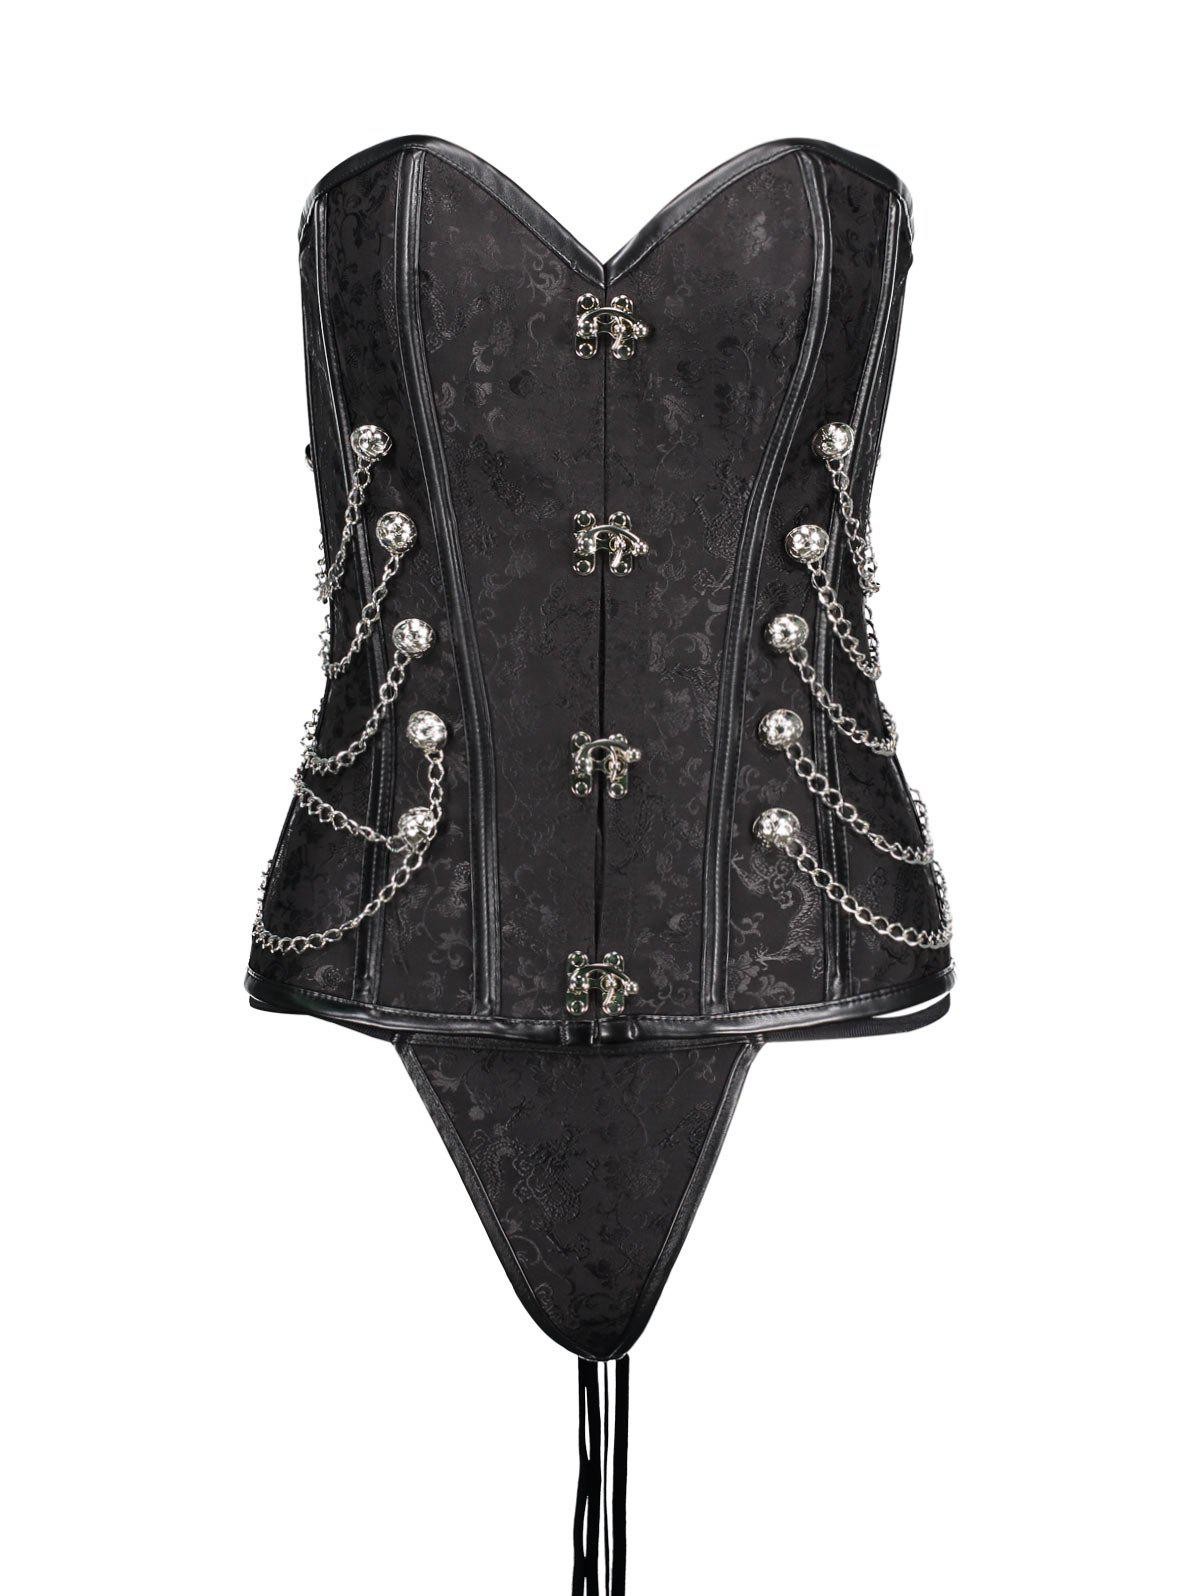 Lace Up Chians Steel Boned Punk Corset Top lace up steam punk halter corset top